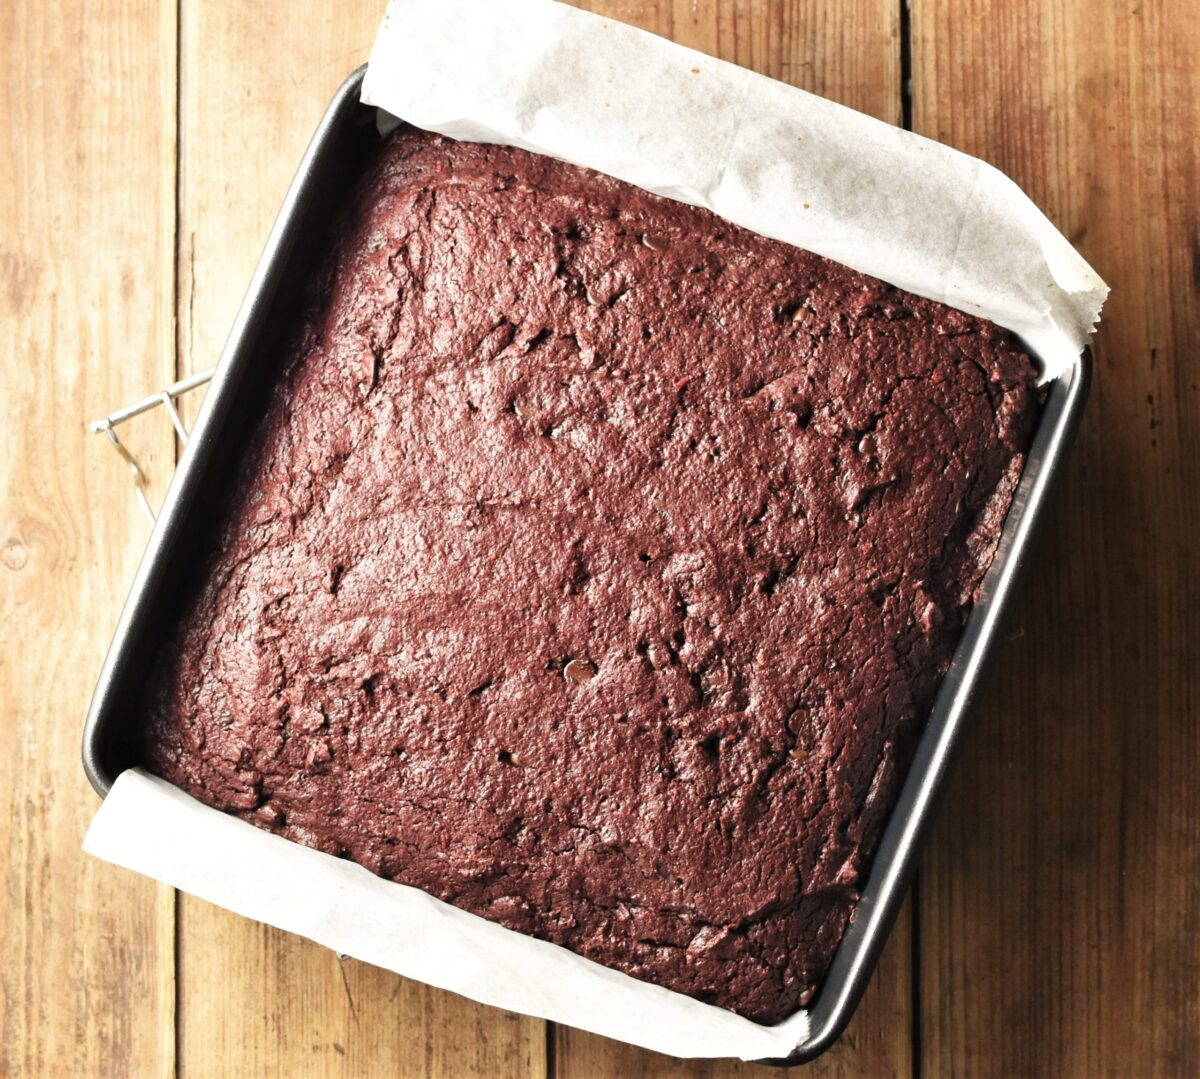 Beet brownie cake in square pan lined with parchment paper.